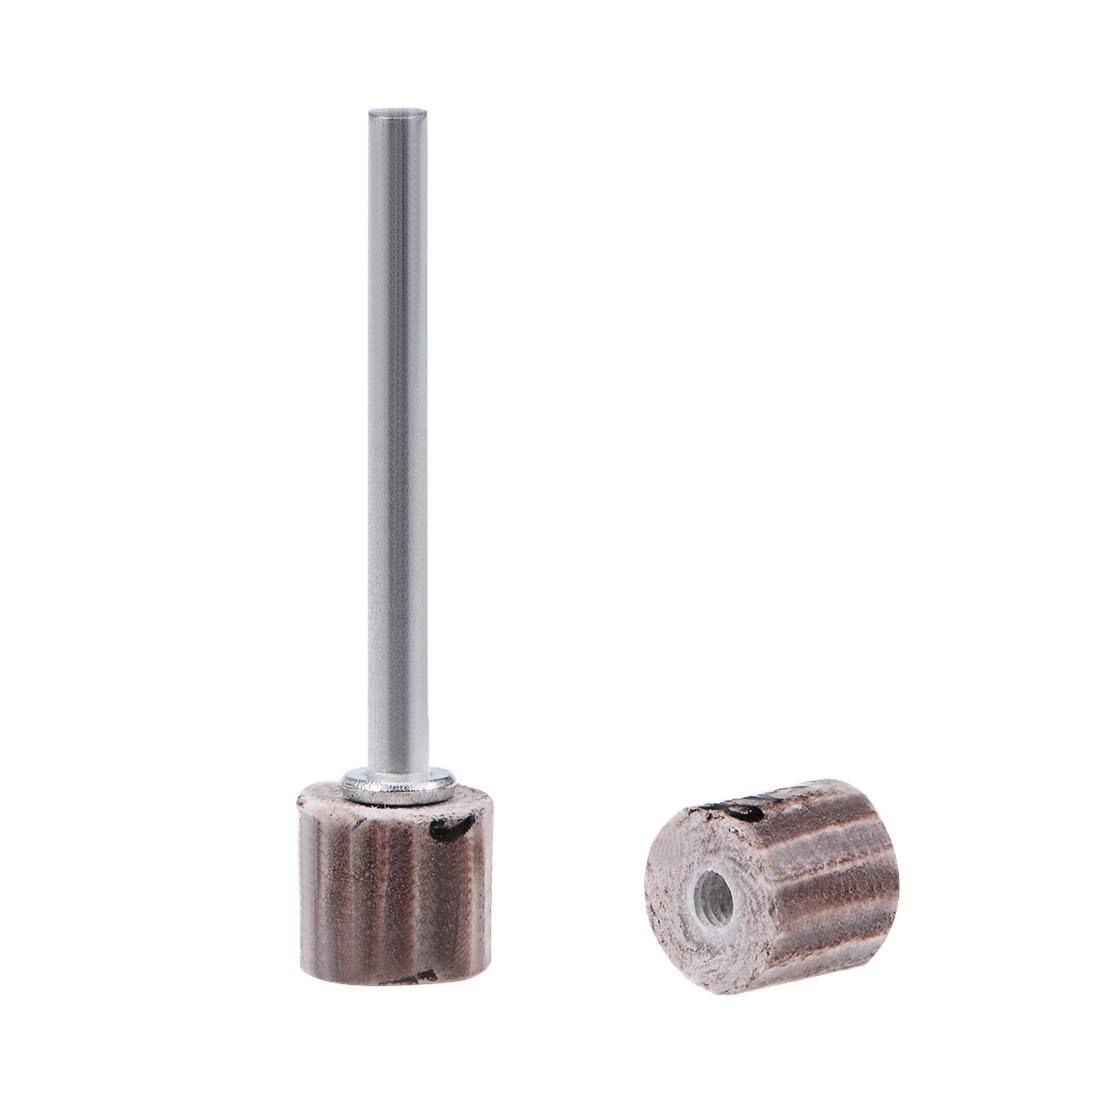 uxcell 2 Pcs 8x8mm Flap Wheel 180 Grits Abrasive Grinding Head with 1/8'' Shank for Rotary Tool